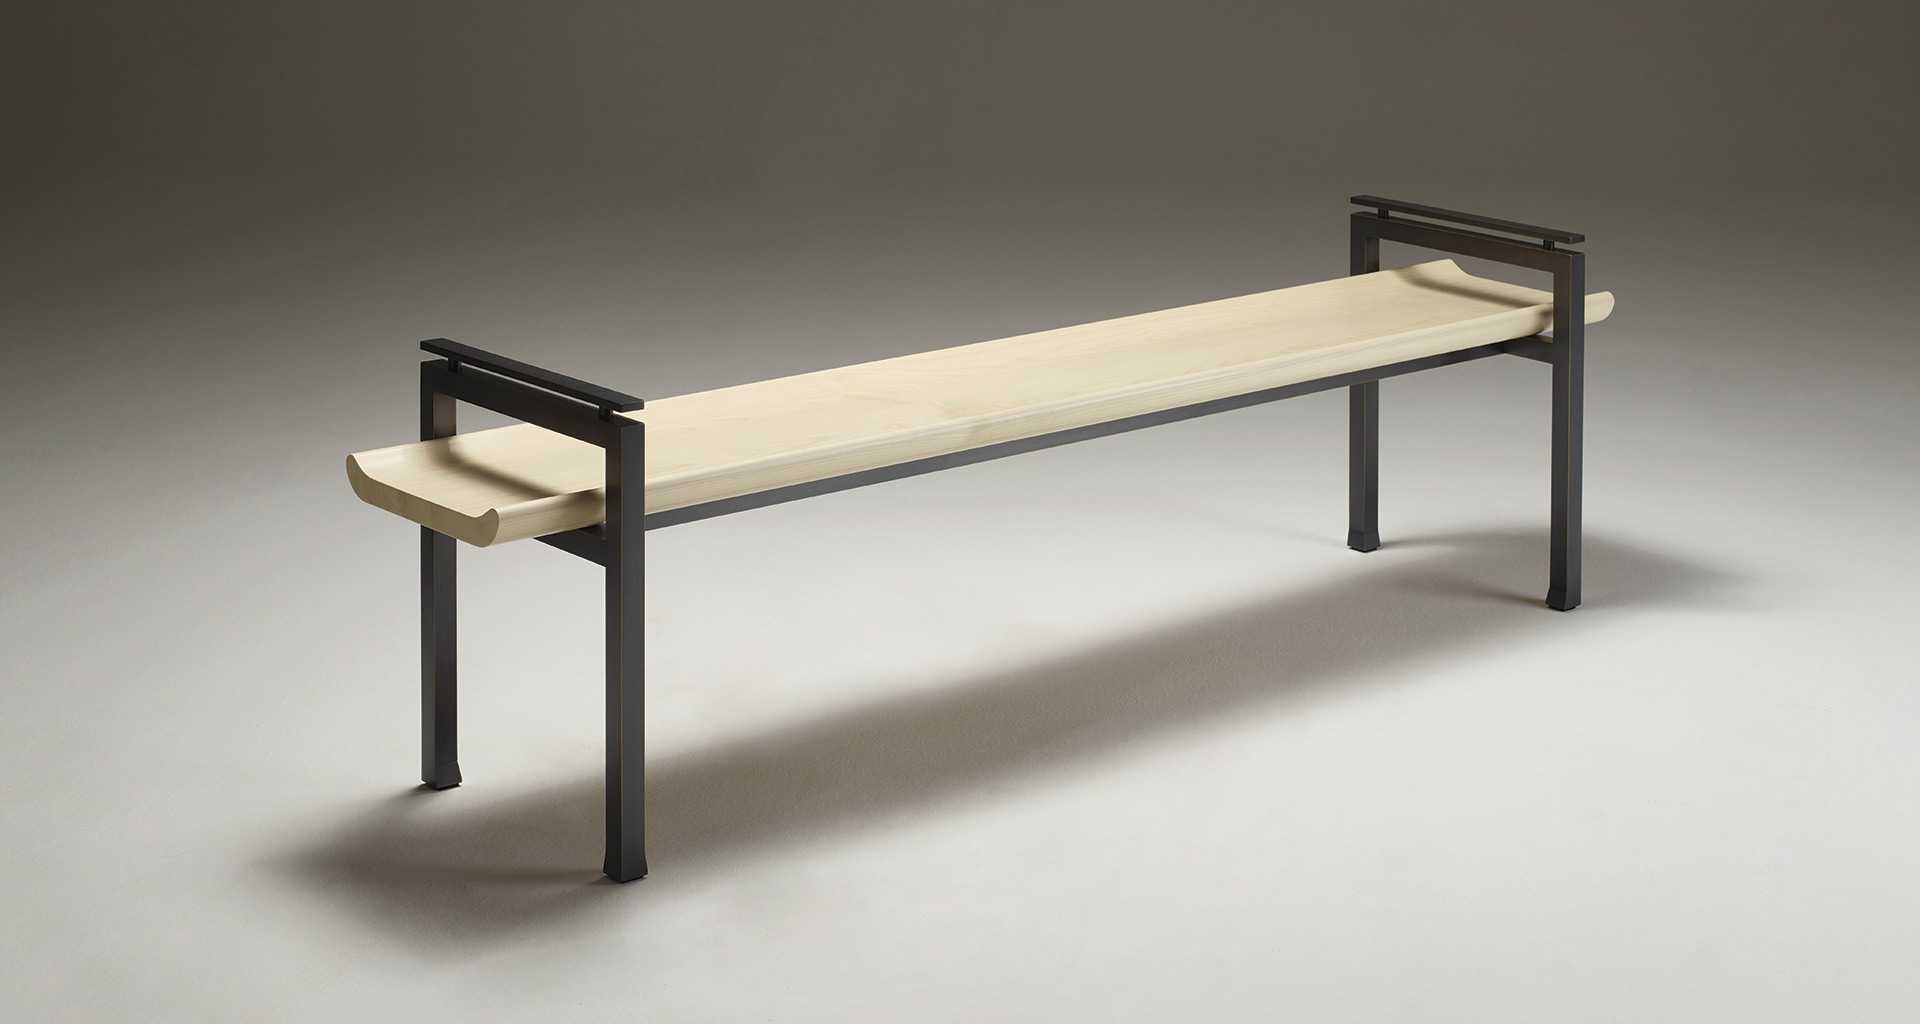 A passepartout bench with an elegant shape